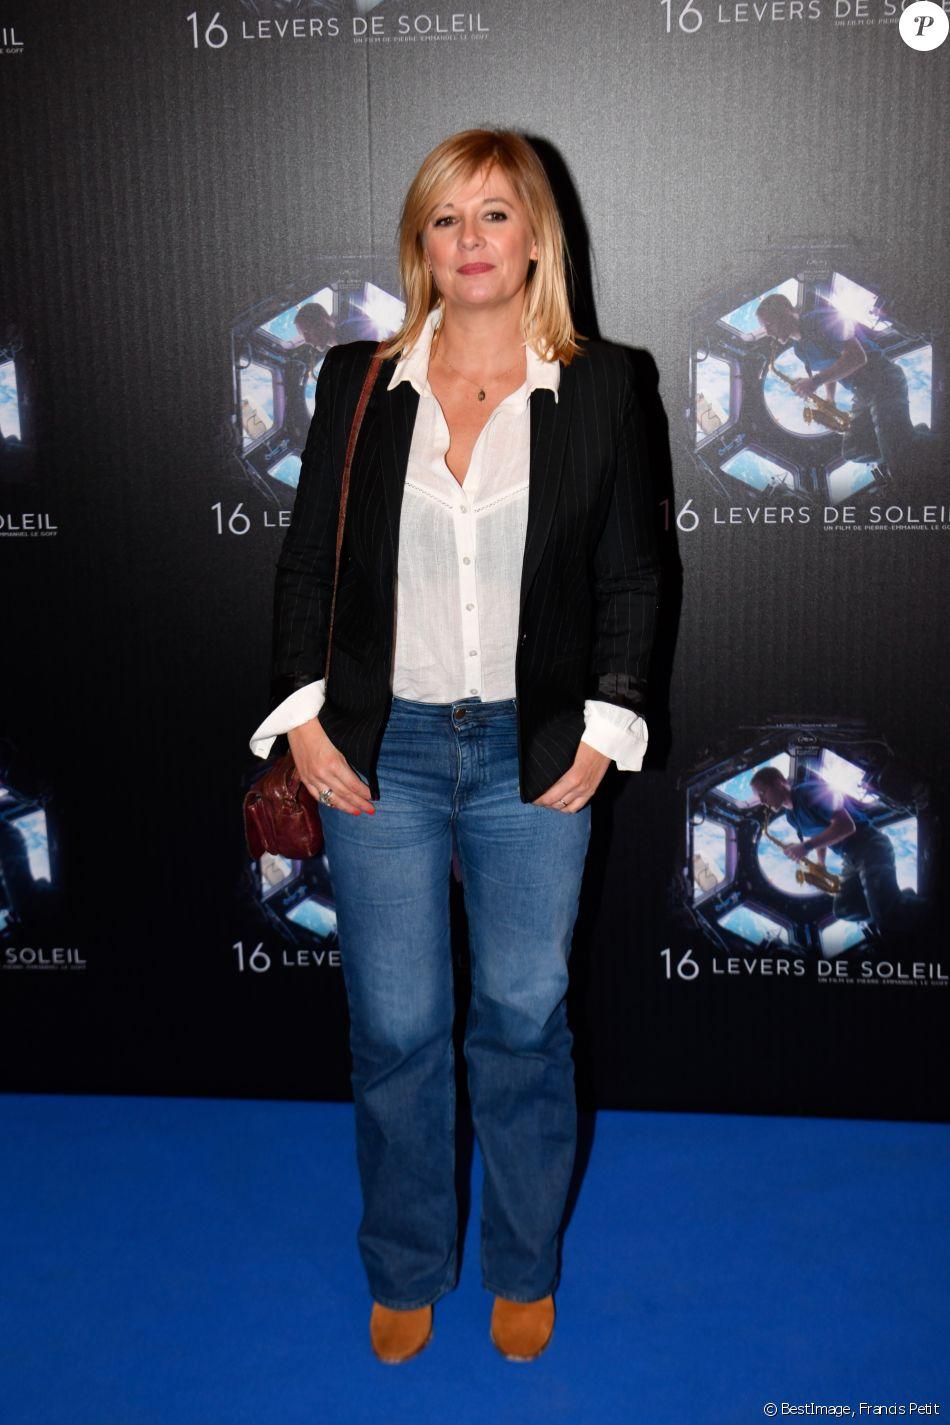 "Flavie Flament - Avant-première du film documentaire ""16 levers de soleil"" au cinéma Le Grand Rex à Paris, France, le 25 septembre 2018. © Francis Petit/Bestimage"